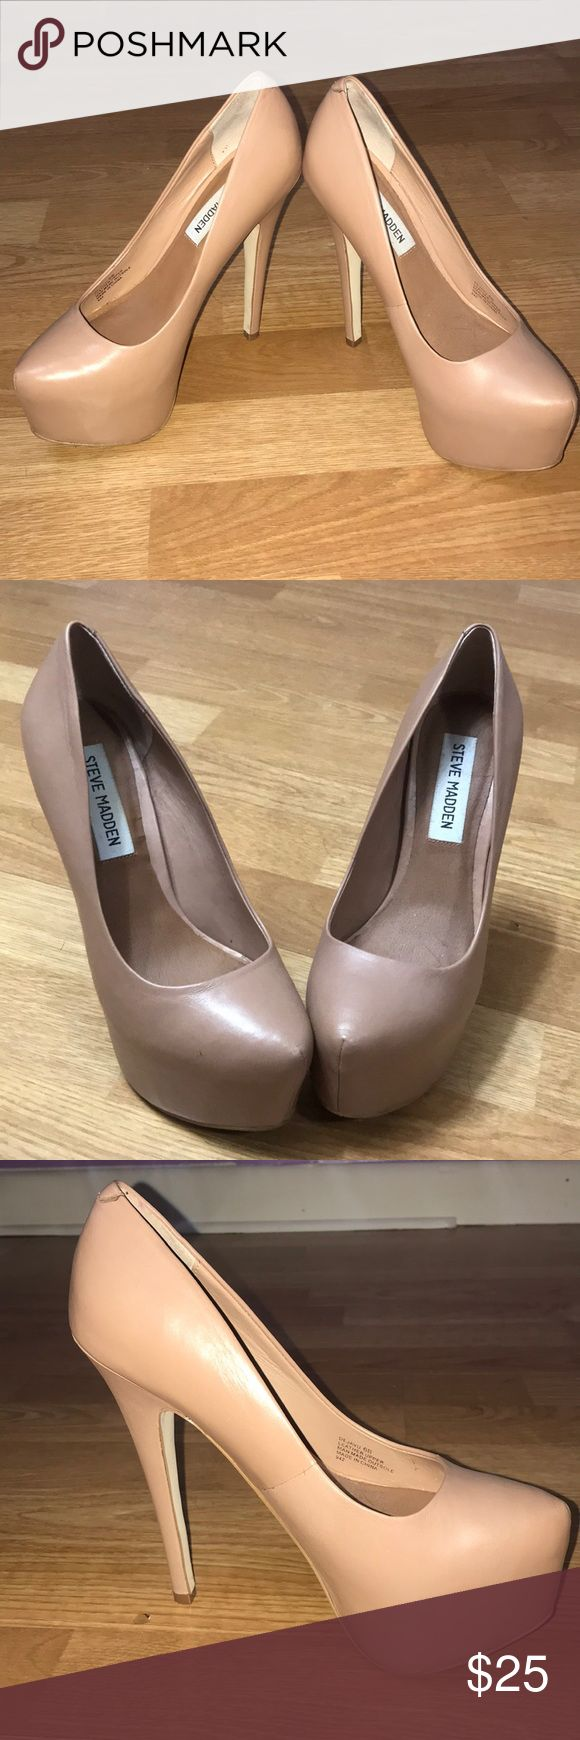 Nude high heels, chunky toe Worn only a few times. No scuffs, minimal scratches, very high heel, round toe Steve Madden Shoes Heels